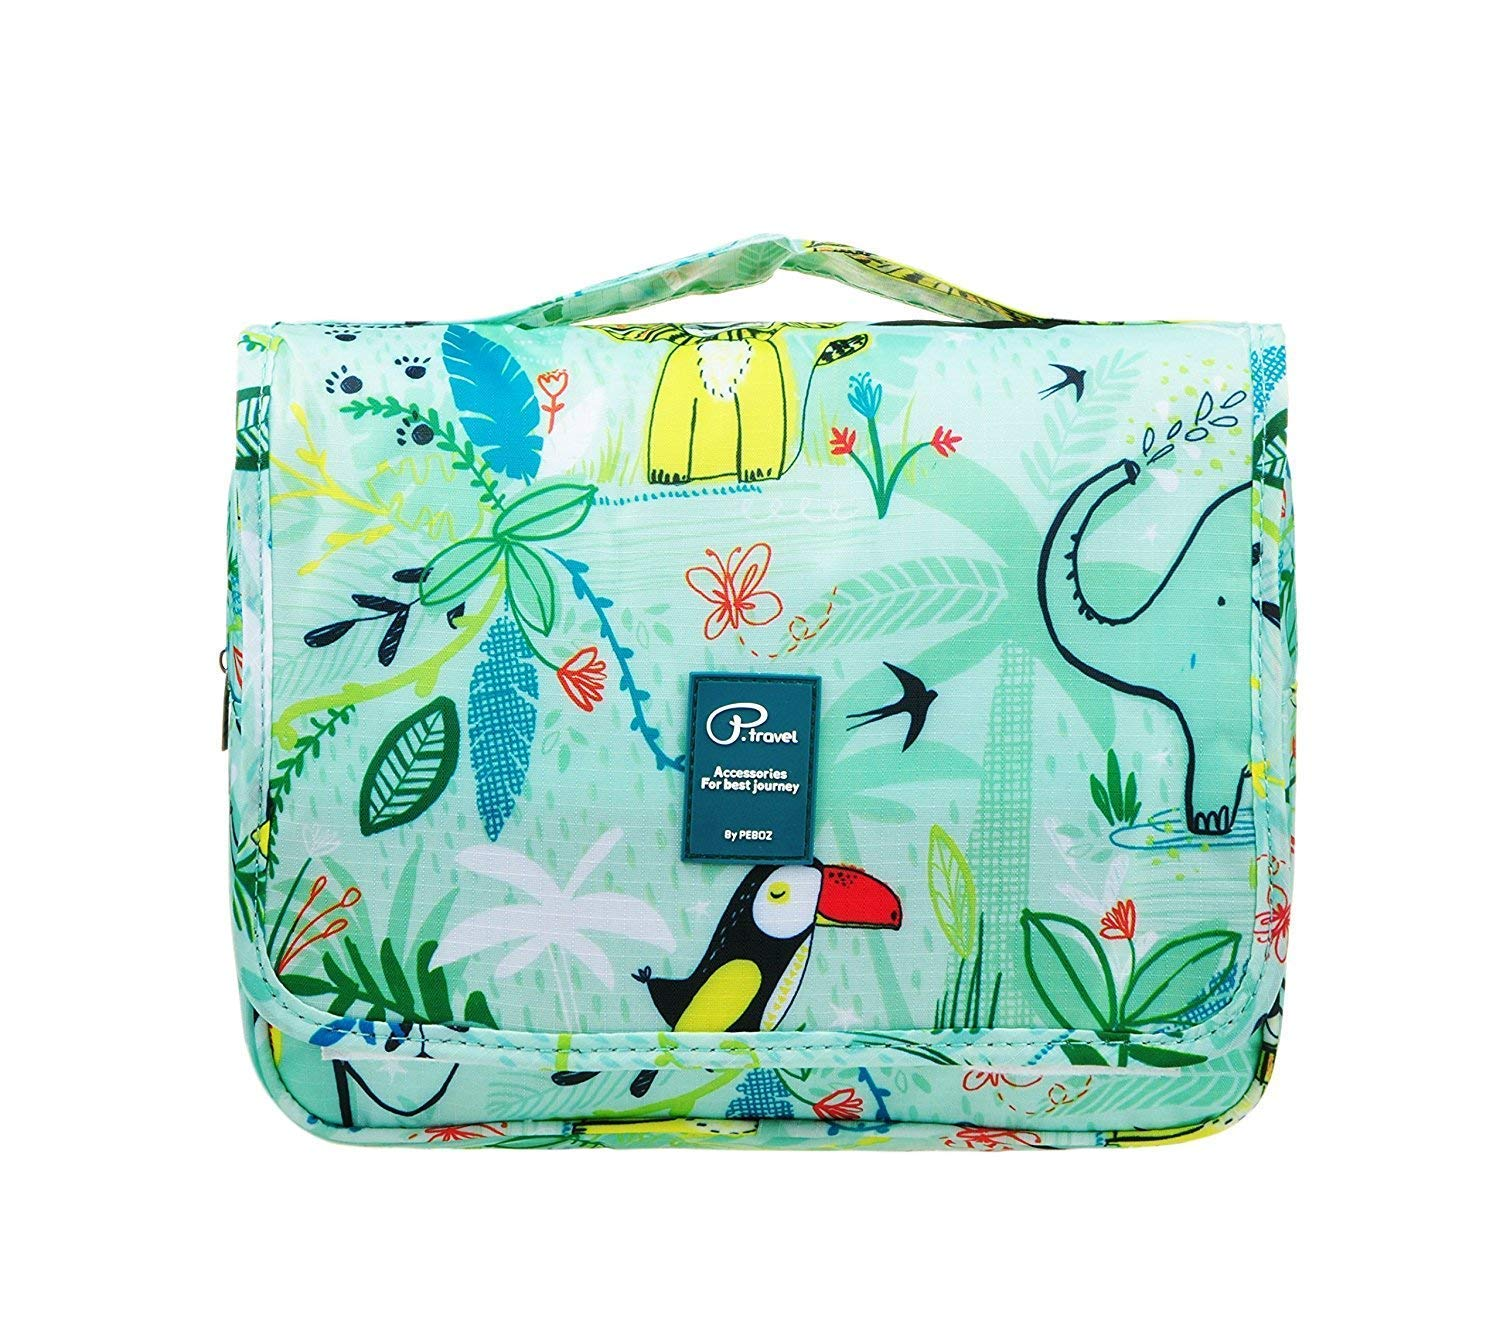 b654305974c343 Hanging Travel Toiletry Bag Women Flamingo Waterproof Toiletries Bag Girls  Toilet Bag Wash Bag Organizer Makeup Pouch Cosmetic Bag with Hanging ...